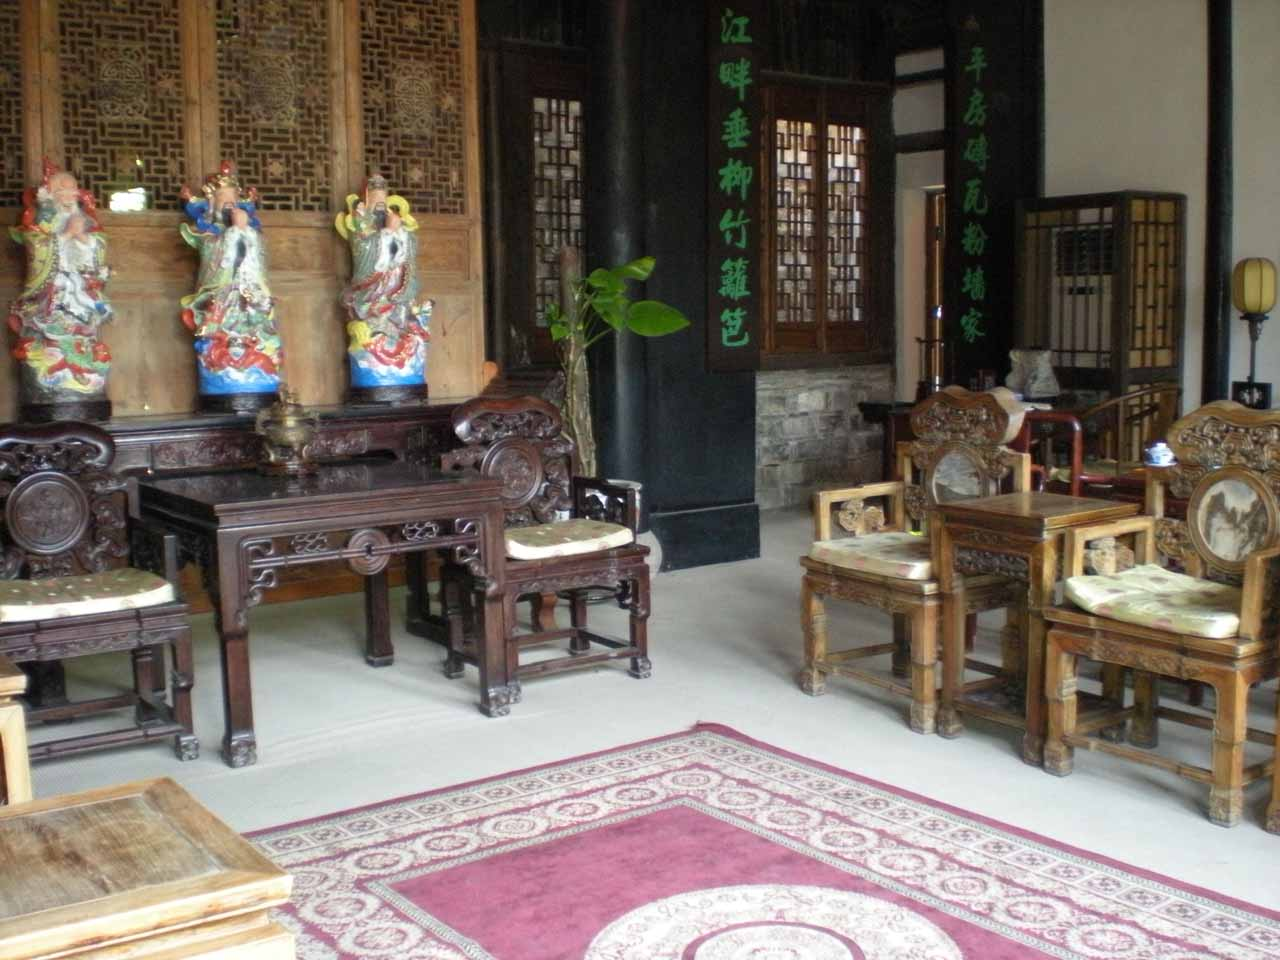 The elaborate lobby of our accommodation in Suzhou